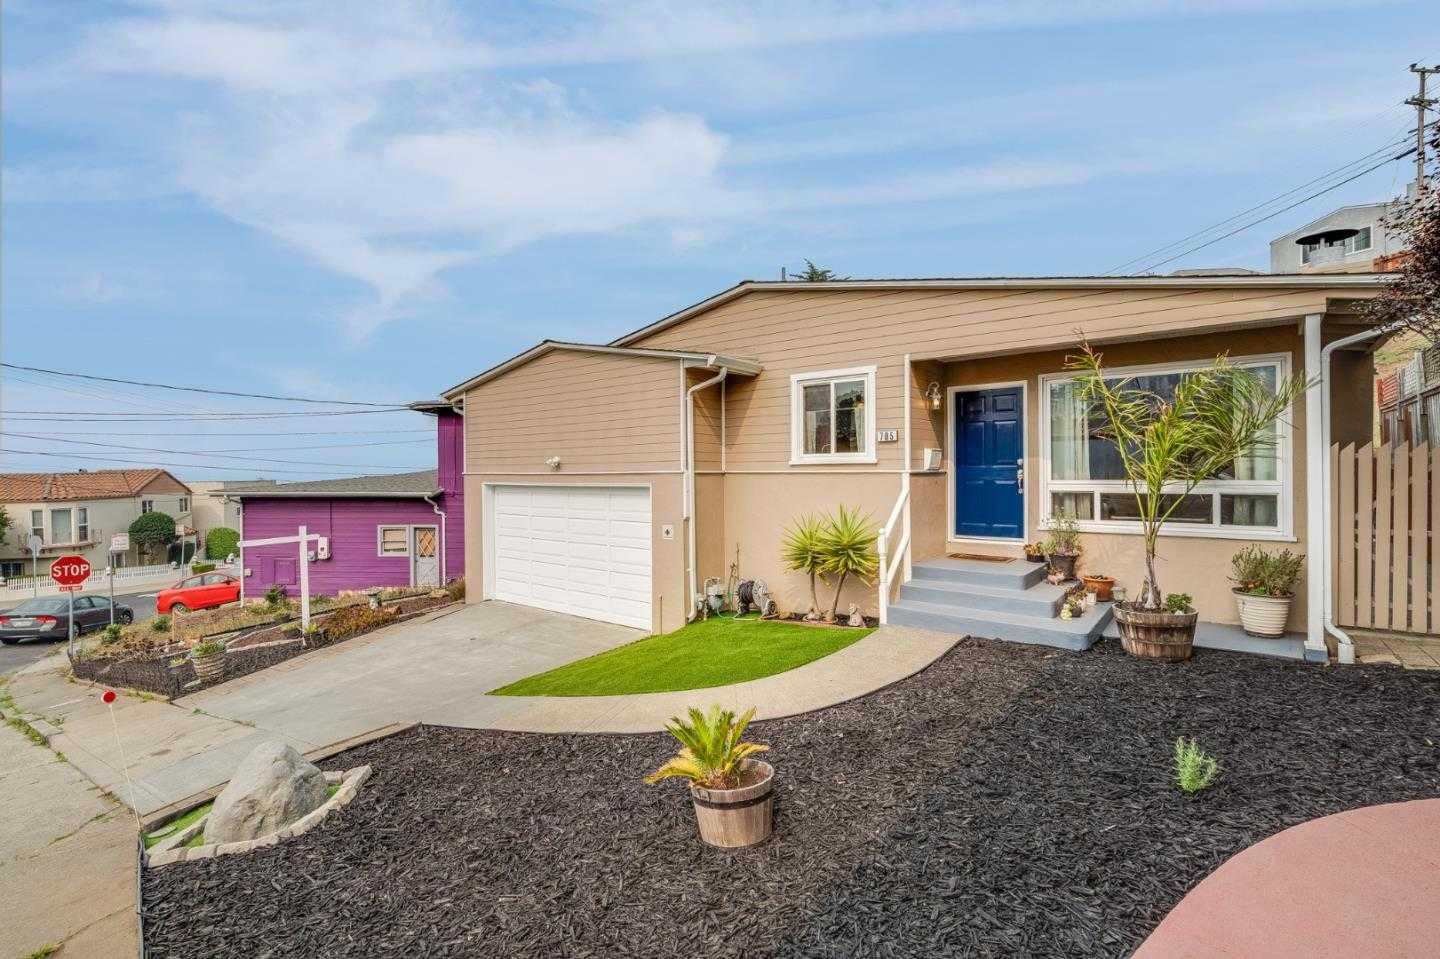 $998,000 - 3Br/1Ba -  for Sale in Daly City